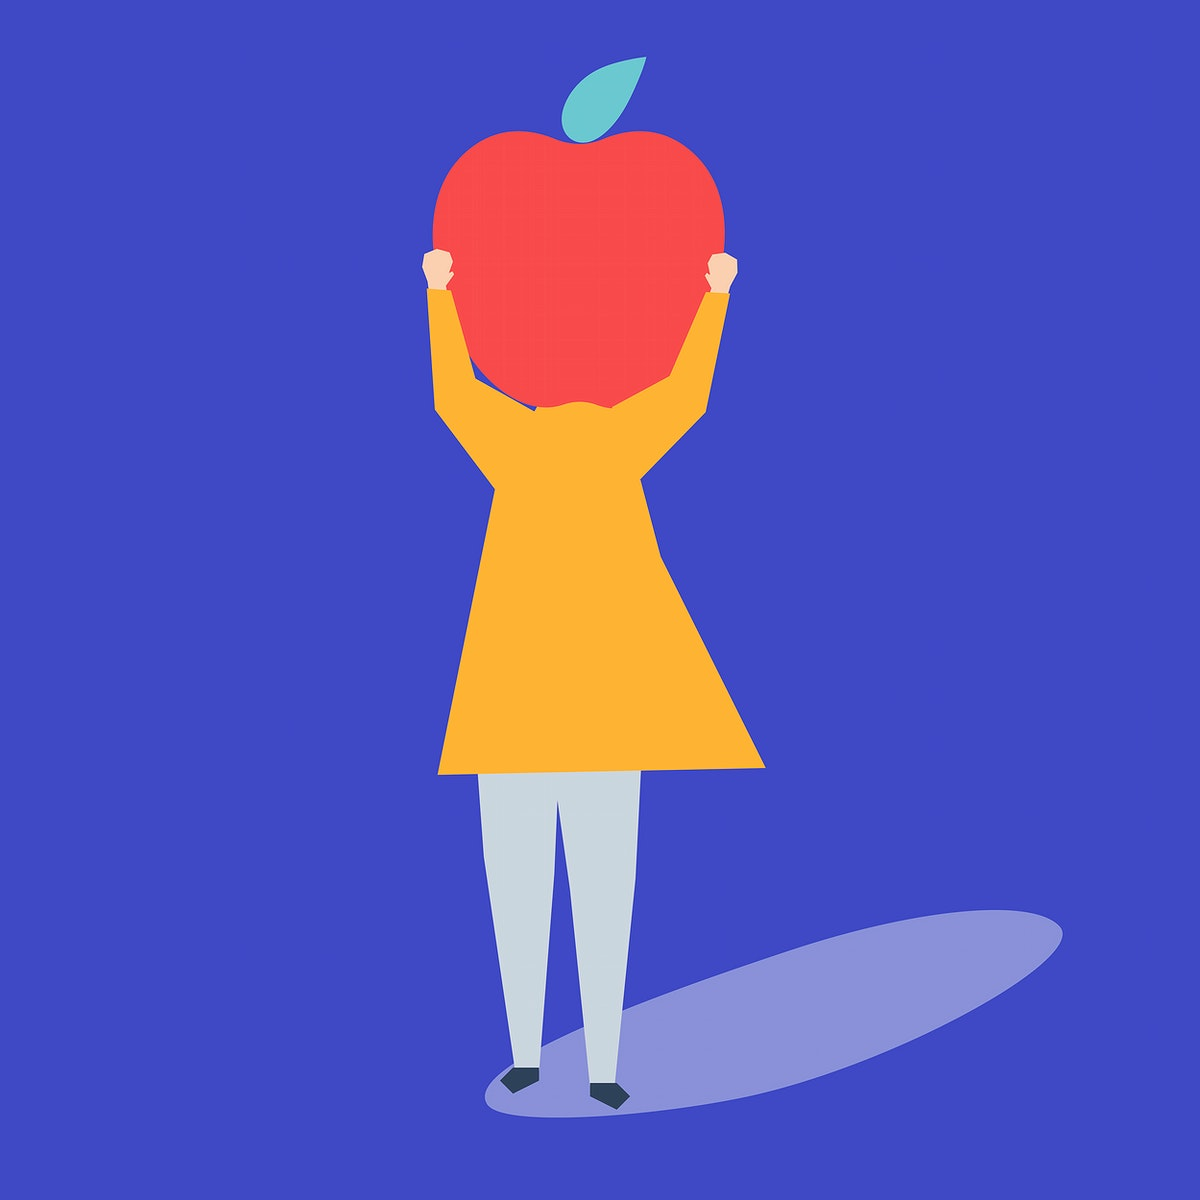 Character of a woman with an apple head illustration